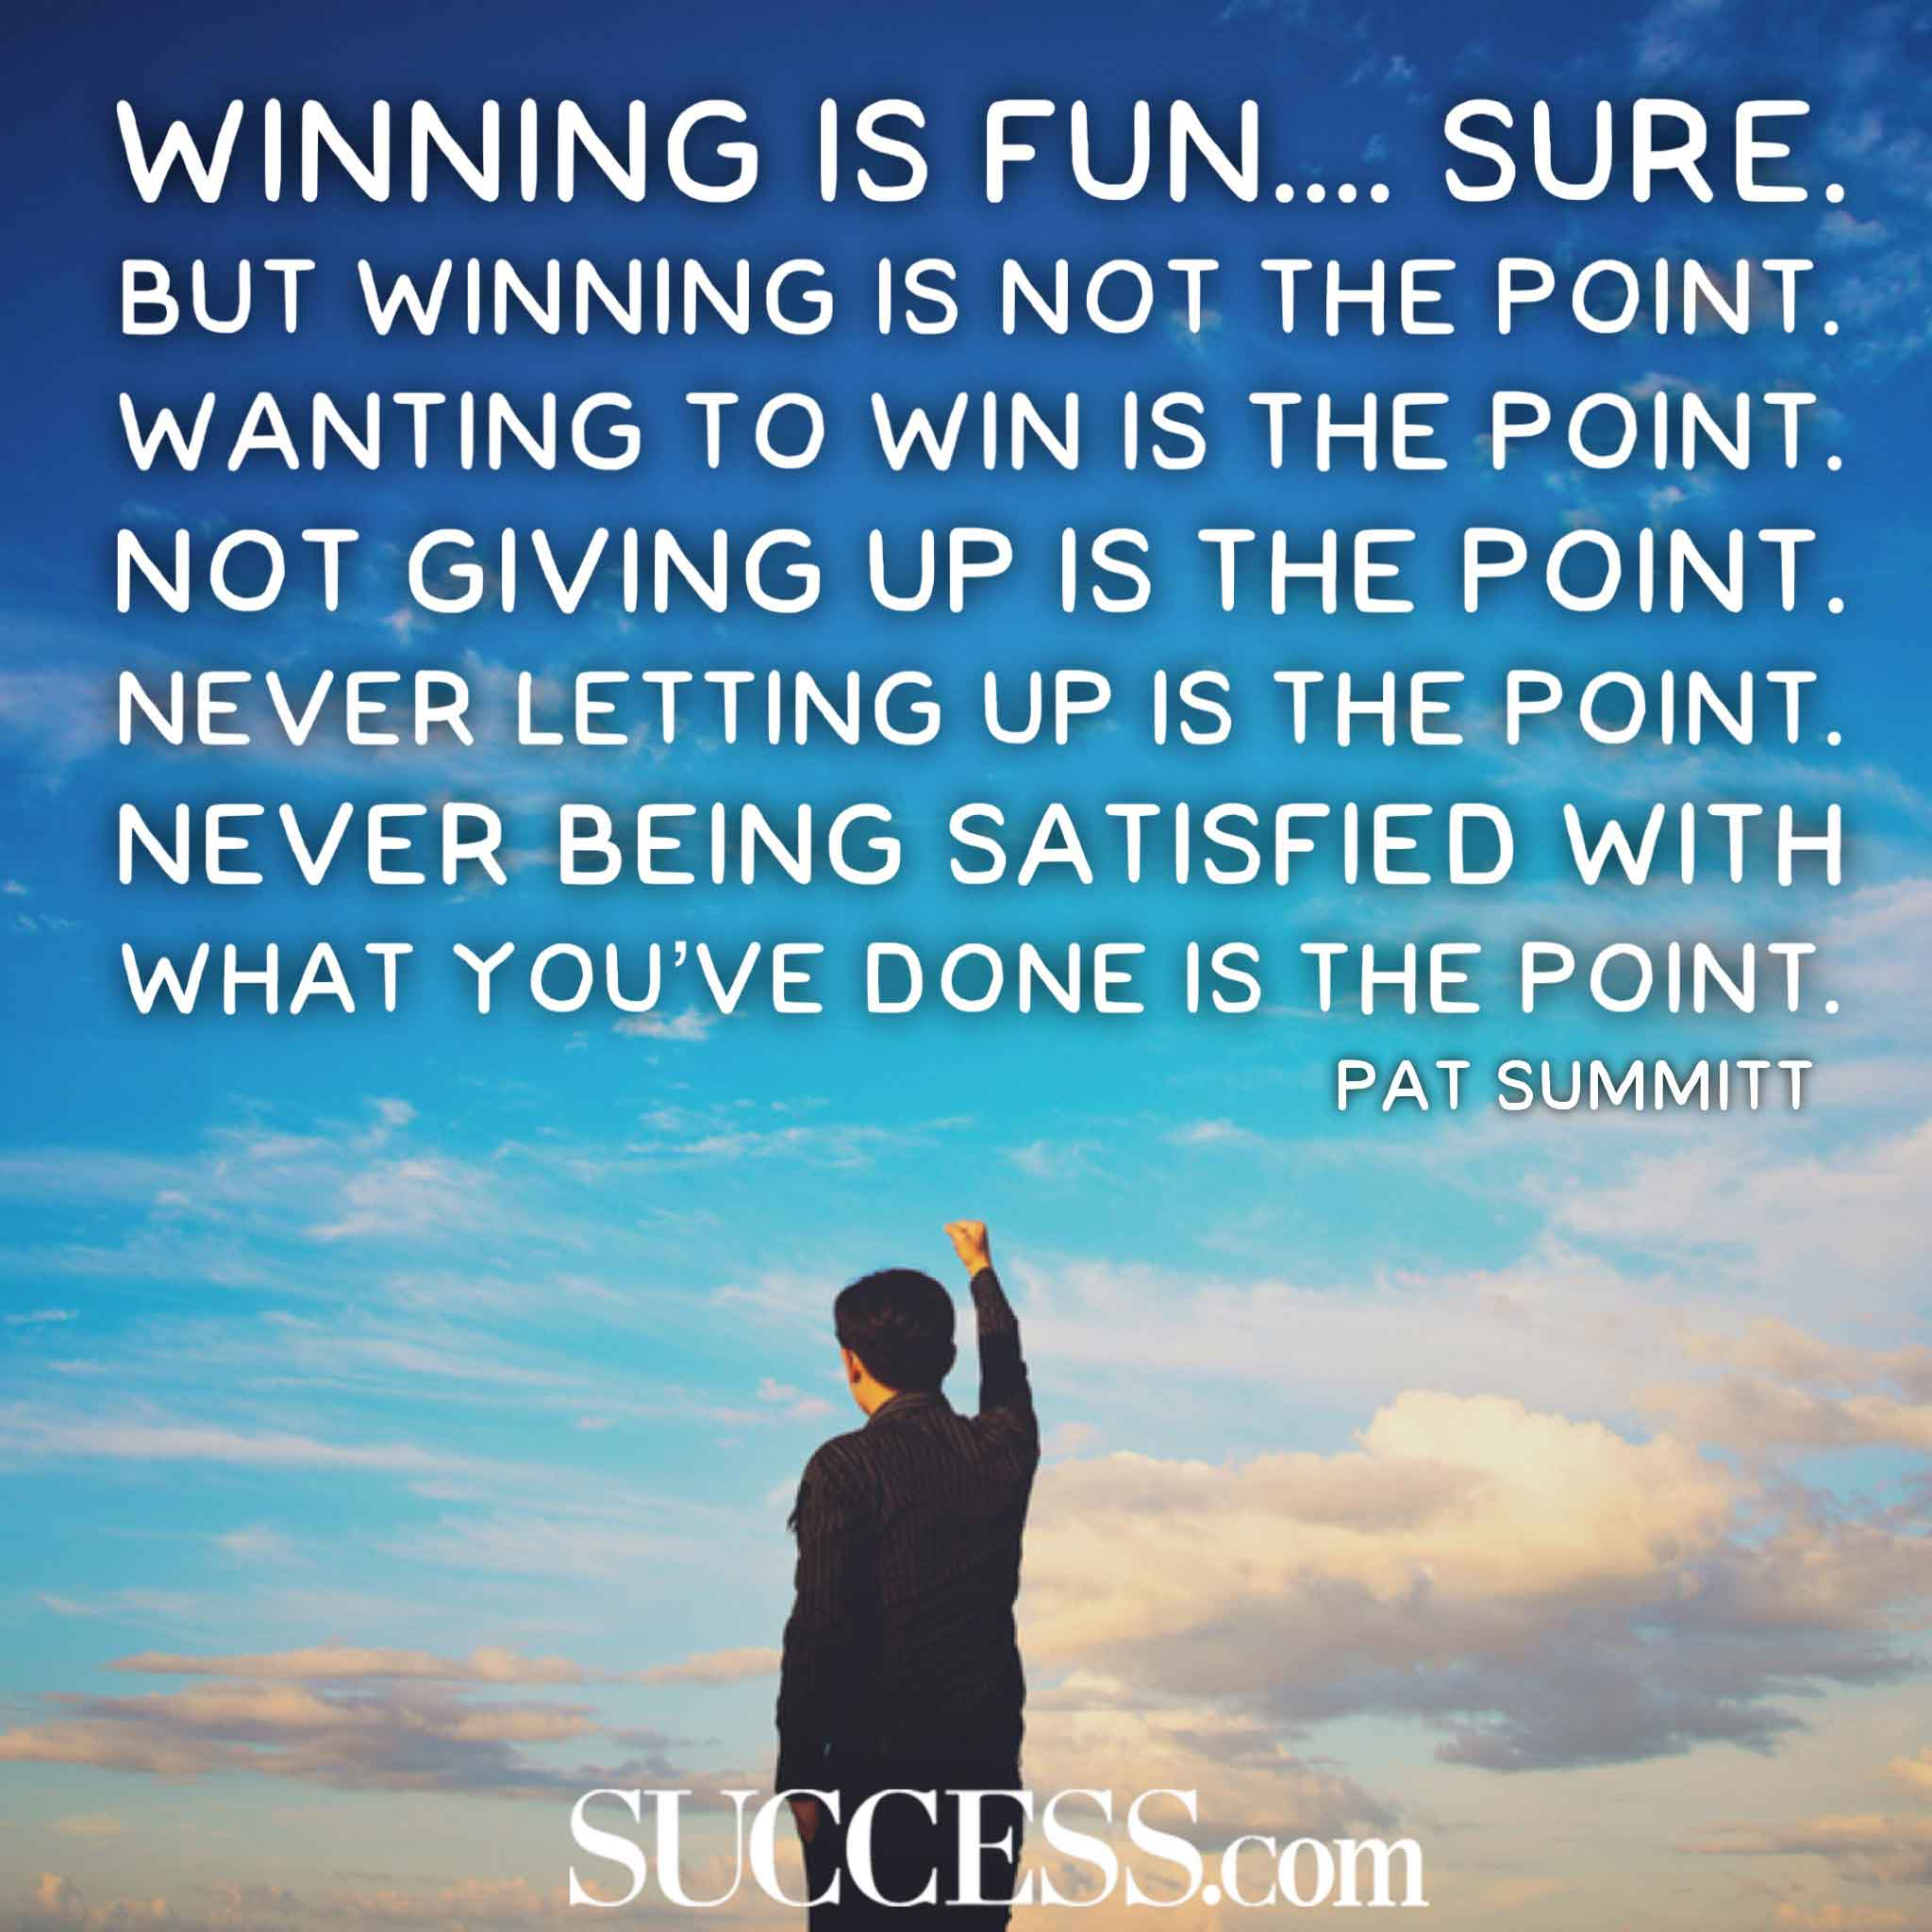 Motivational Quot: 13 Motivational Quotes About Winning